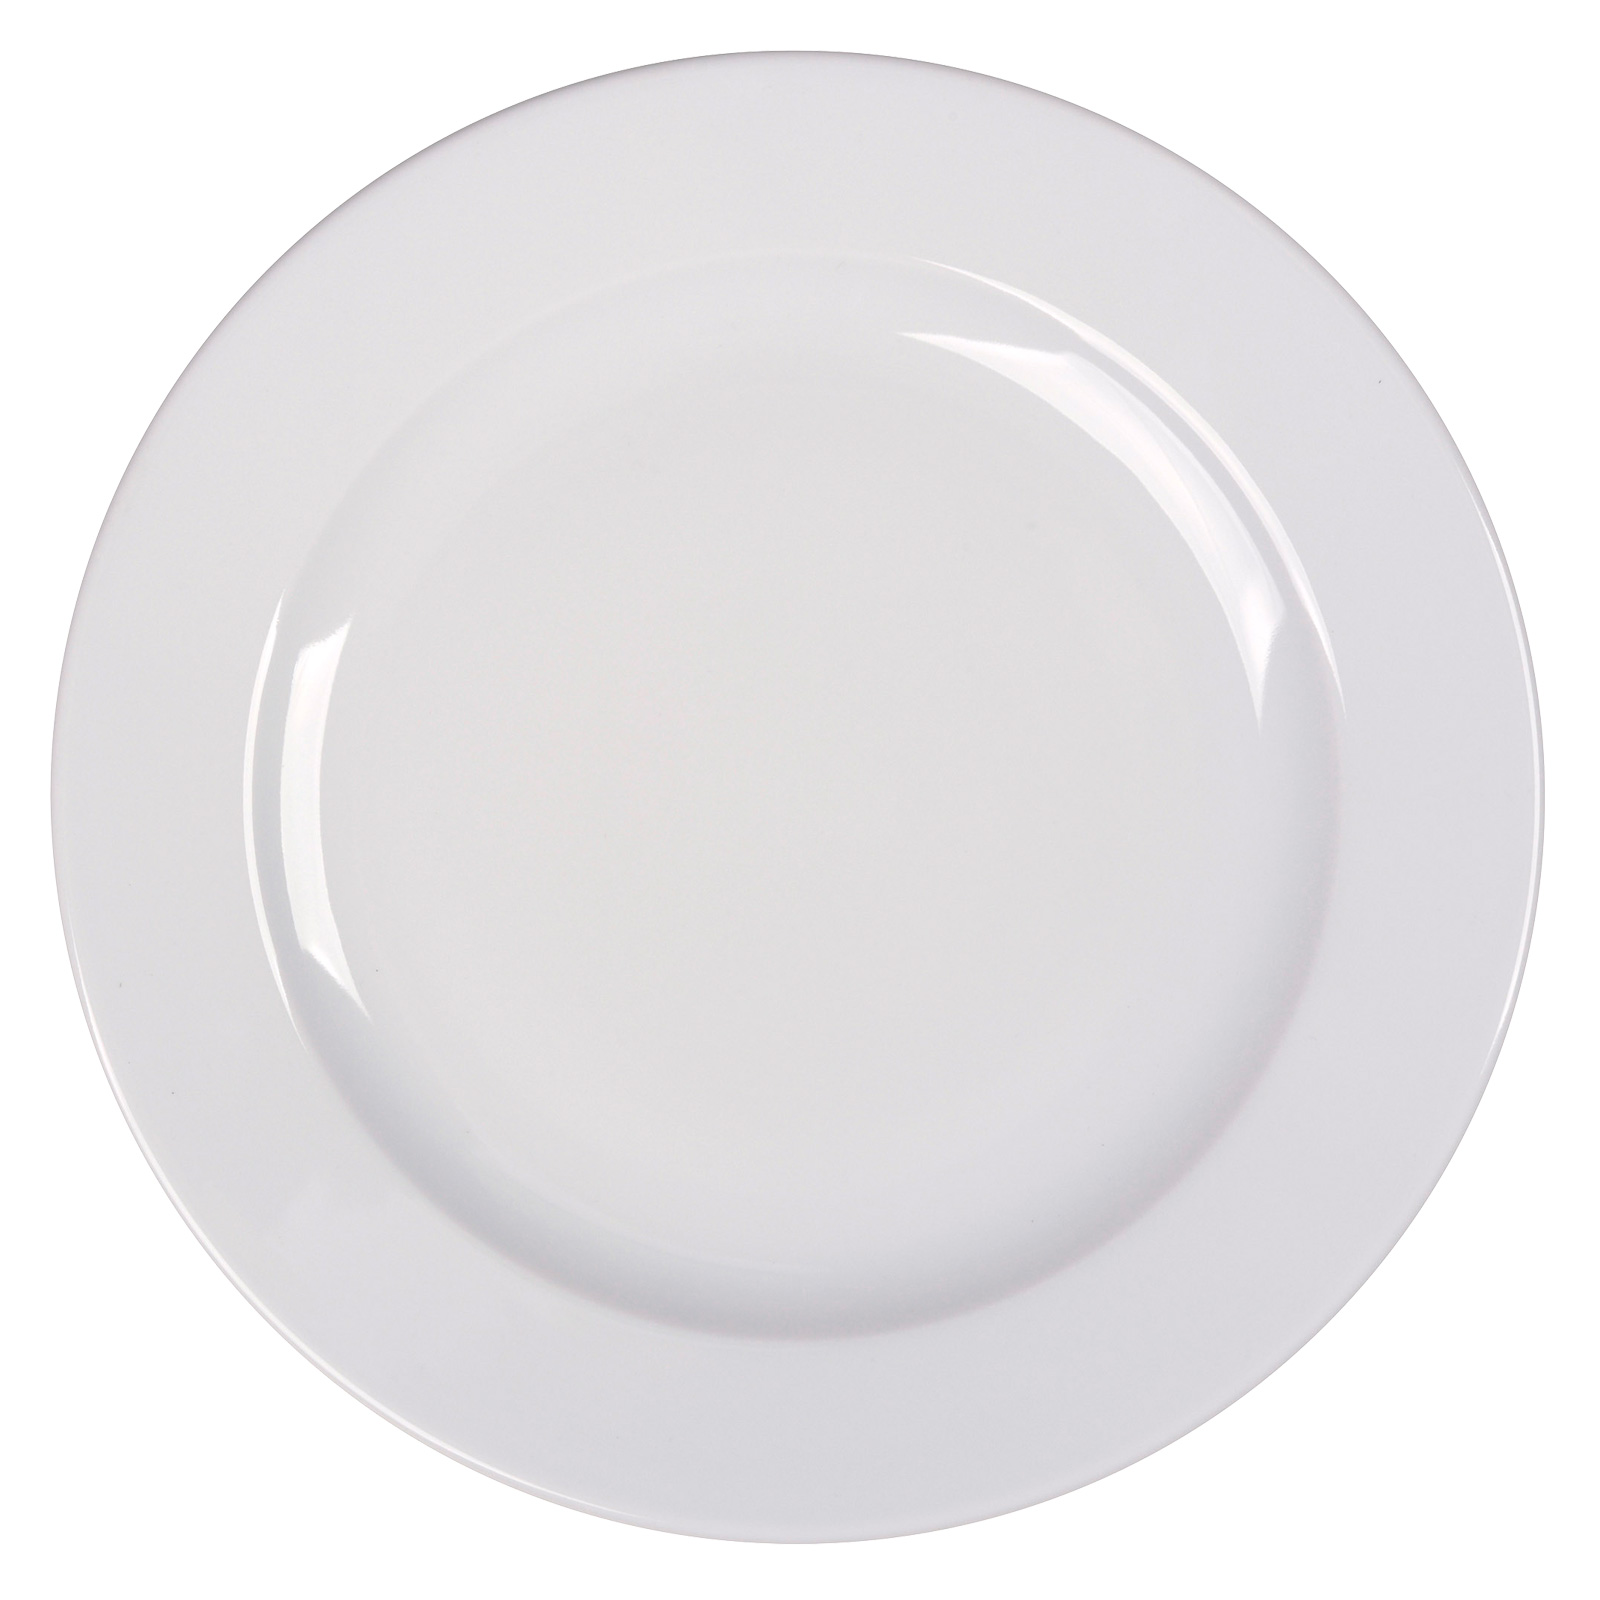 Set of 12 Kaszub Plates Medium by Lubiana